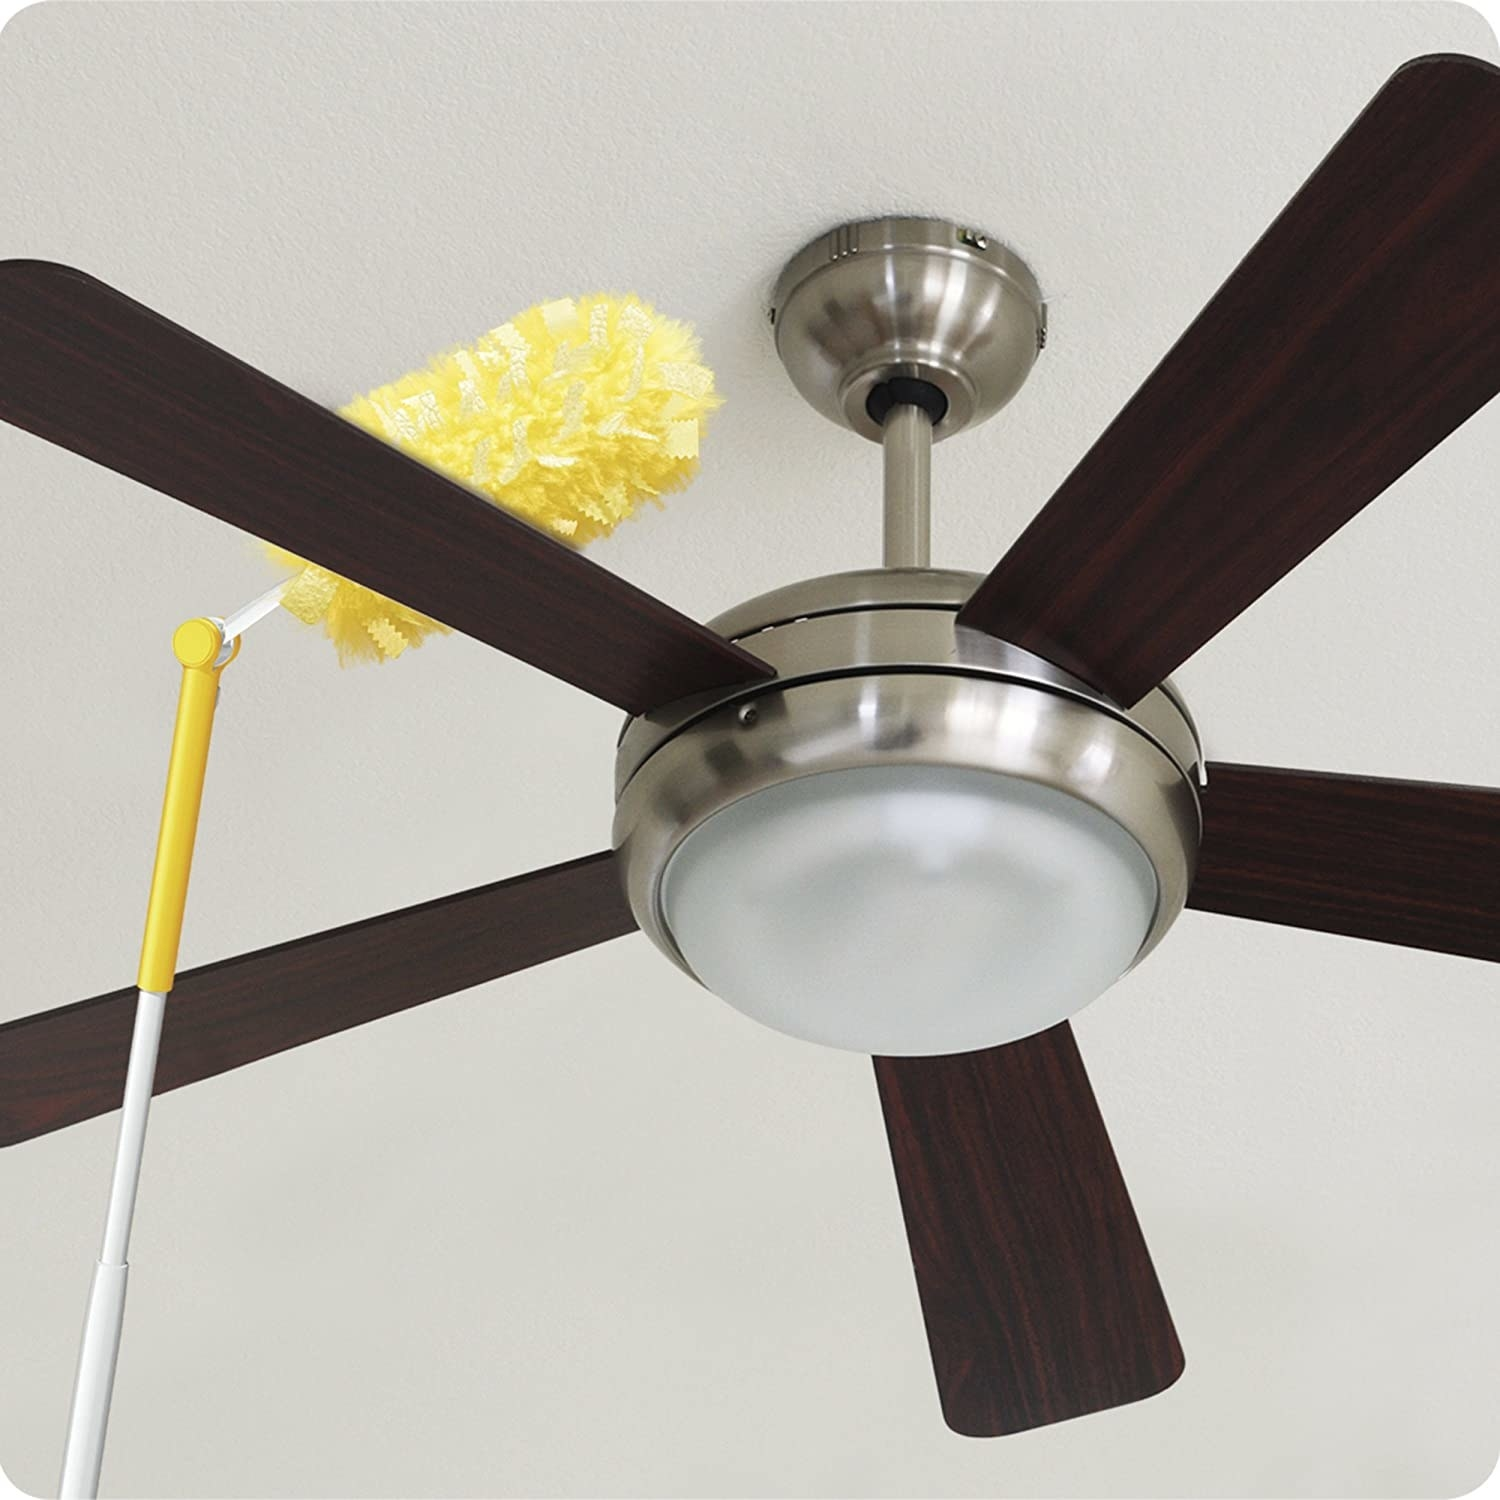 the duster being used to clean a ceiling fan